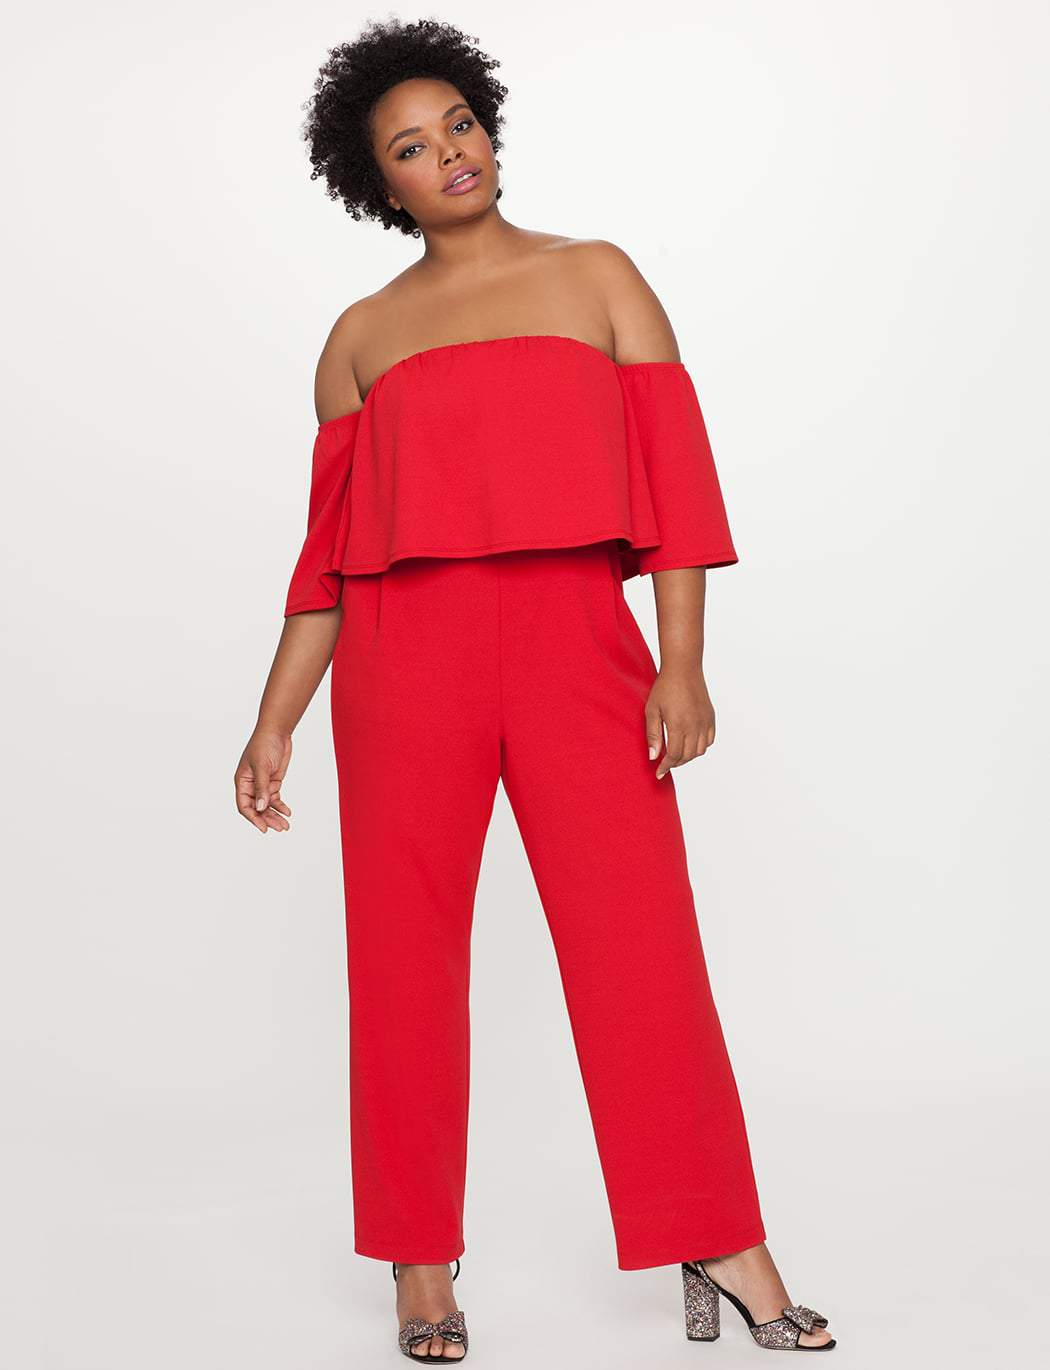 Off the Shoulder Ruffle Overlay Plus Size Jumpsuit